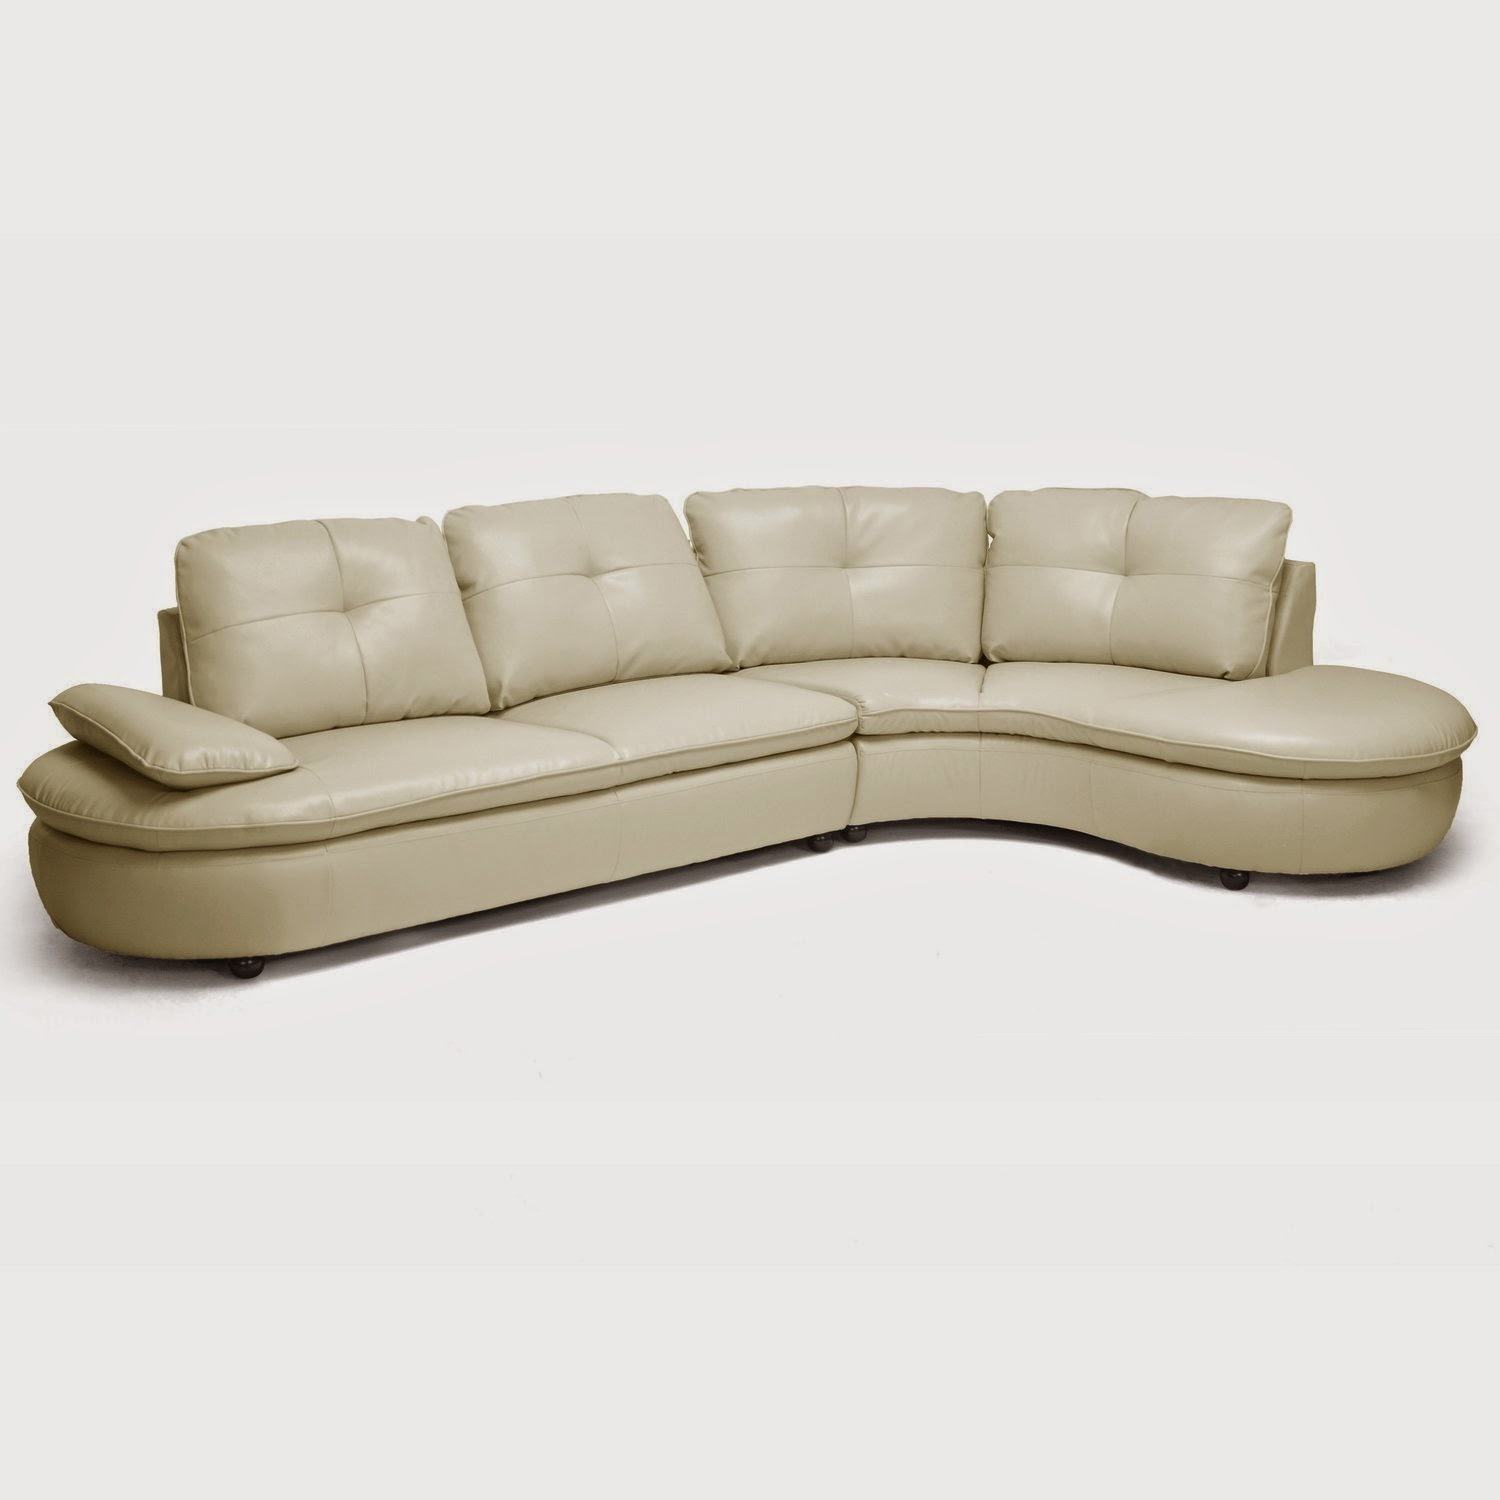 Curved sofa couch for sale curved contemporary sofa for Modern sofa chair